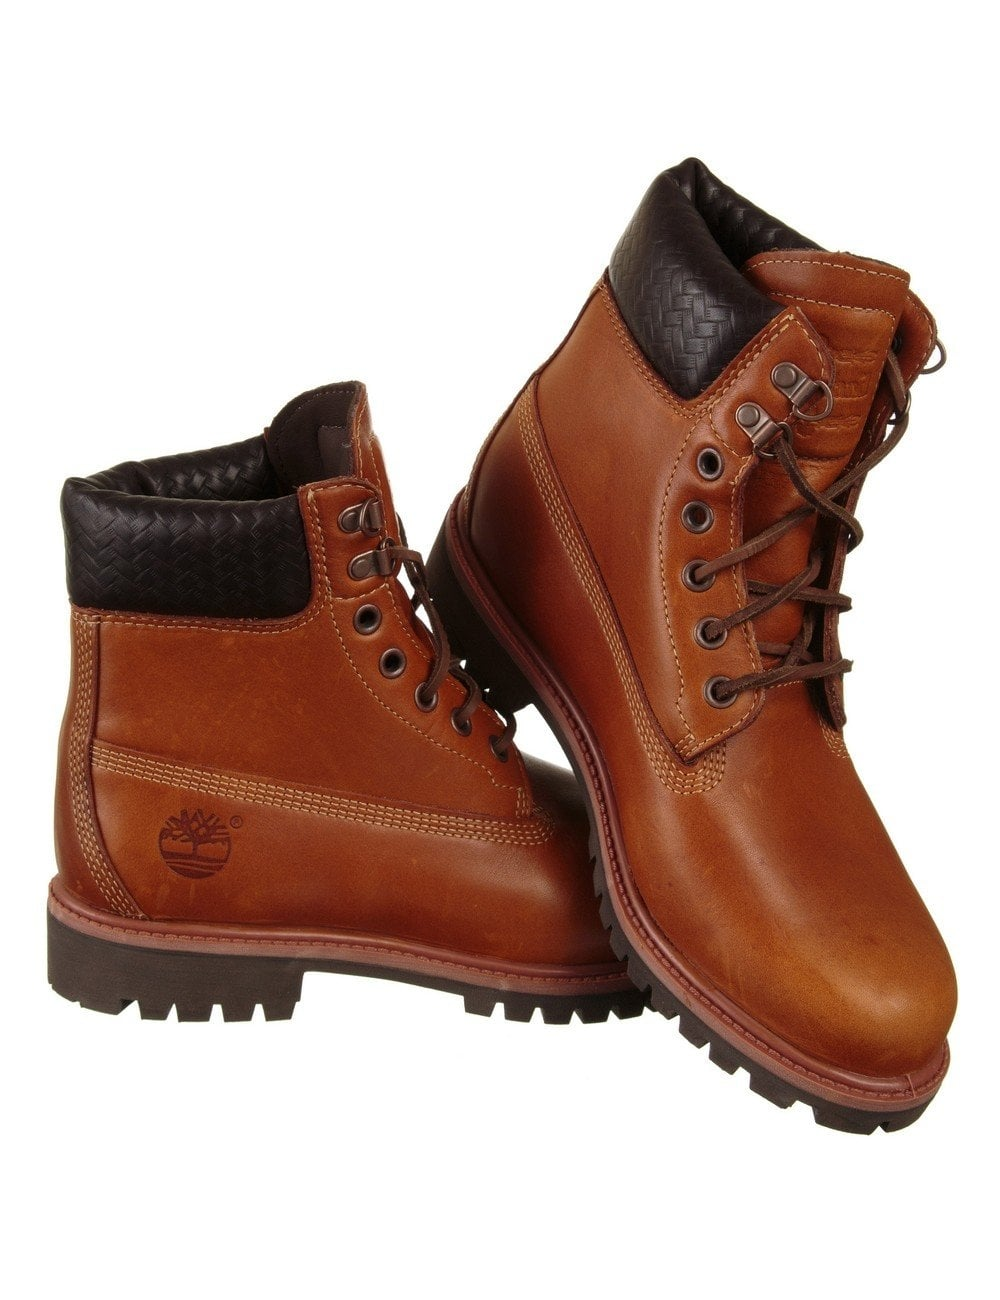 fresh styles great deals 2017 big selection 6-inch Premium Boot - Claypot Brown with Woven Collar